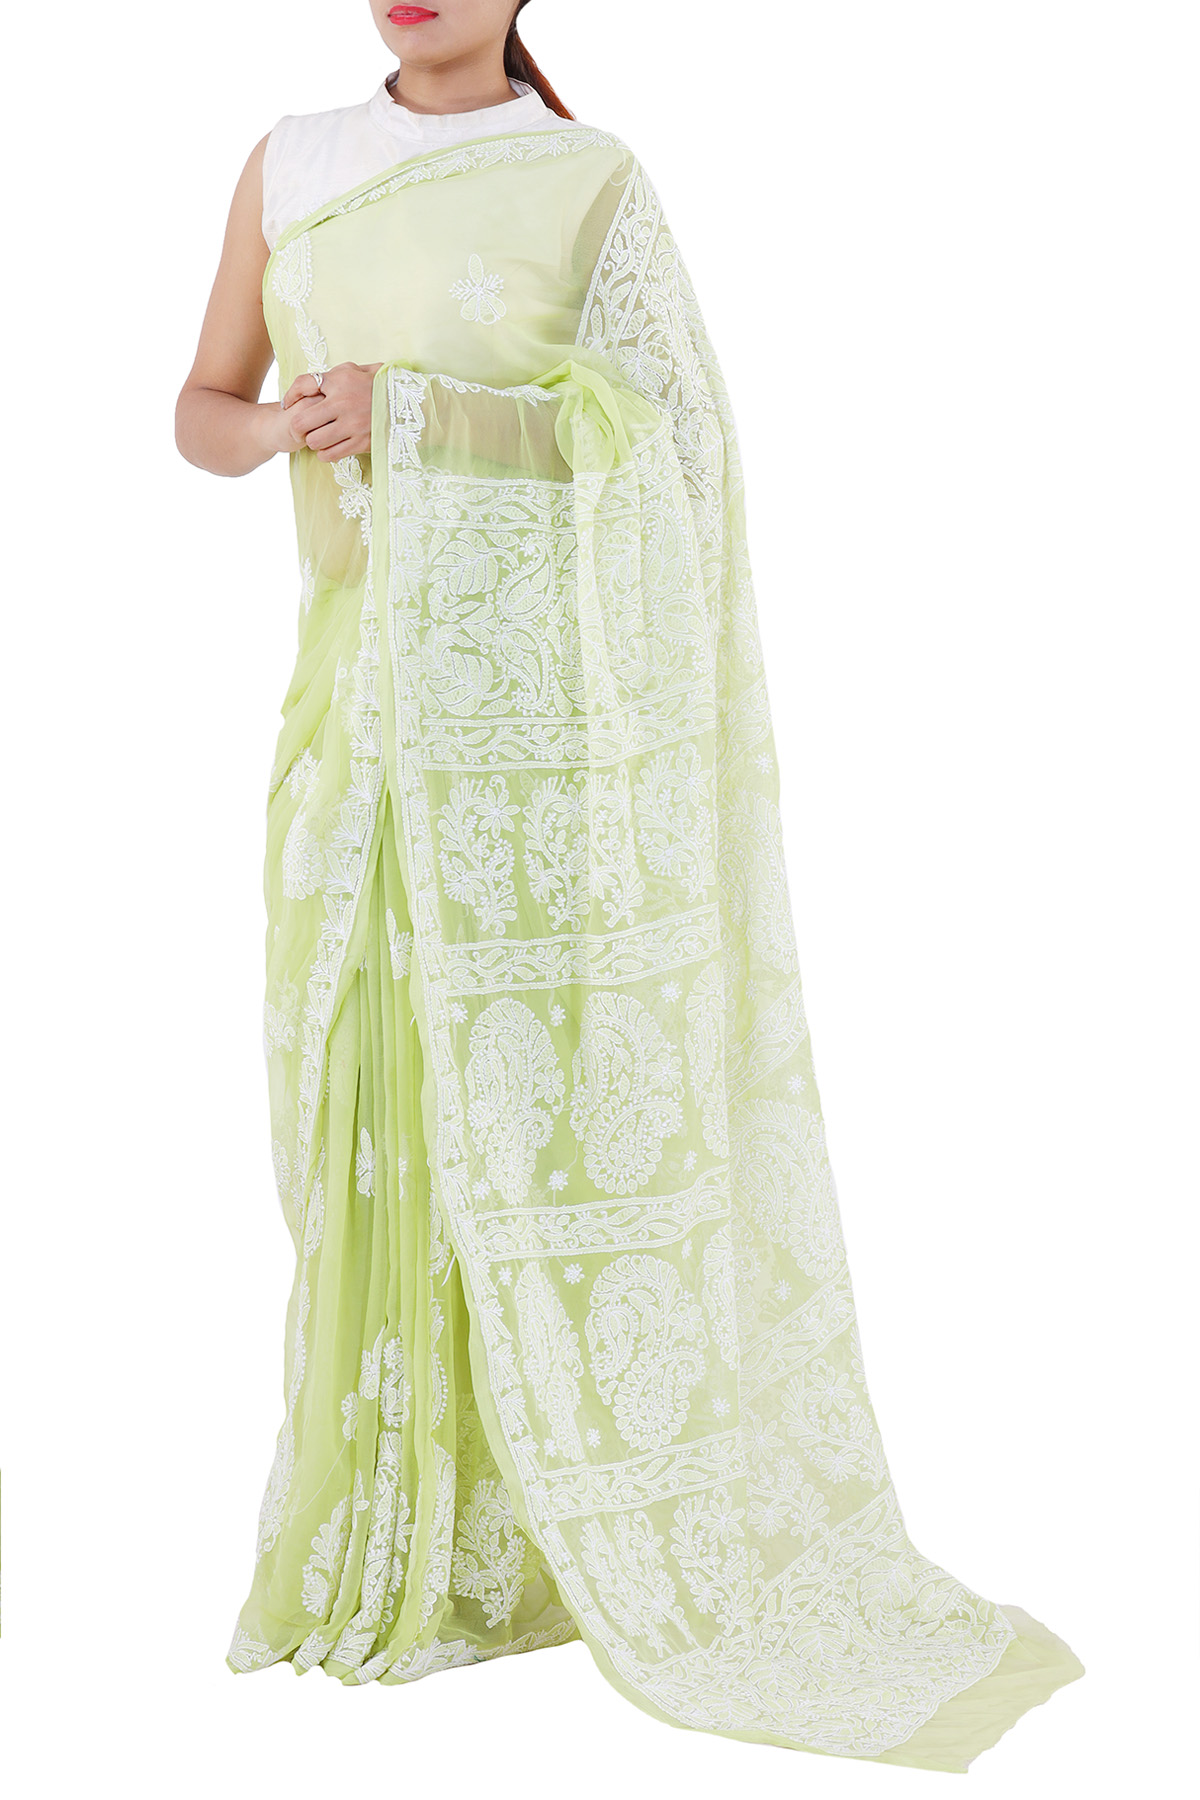 Green Color Hand Embroidered Lucknowi Chikankari Saree (With Blouse - Georgette) KC250683